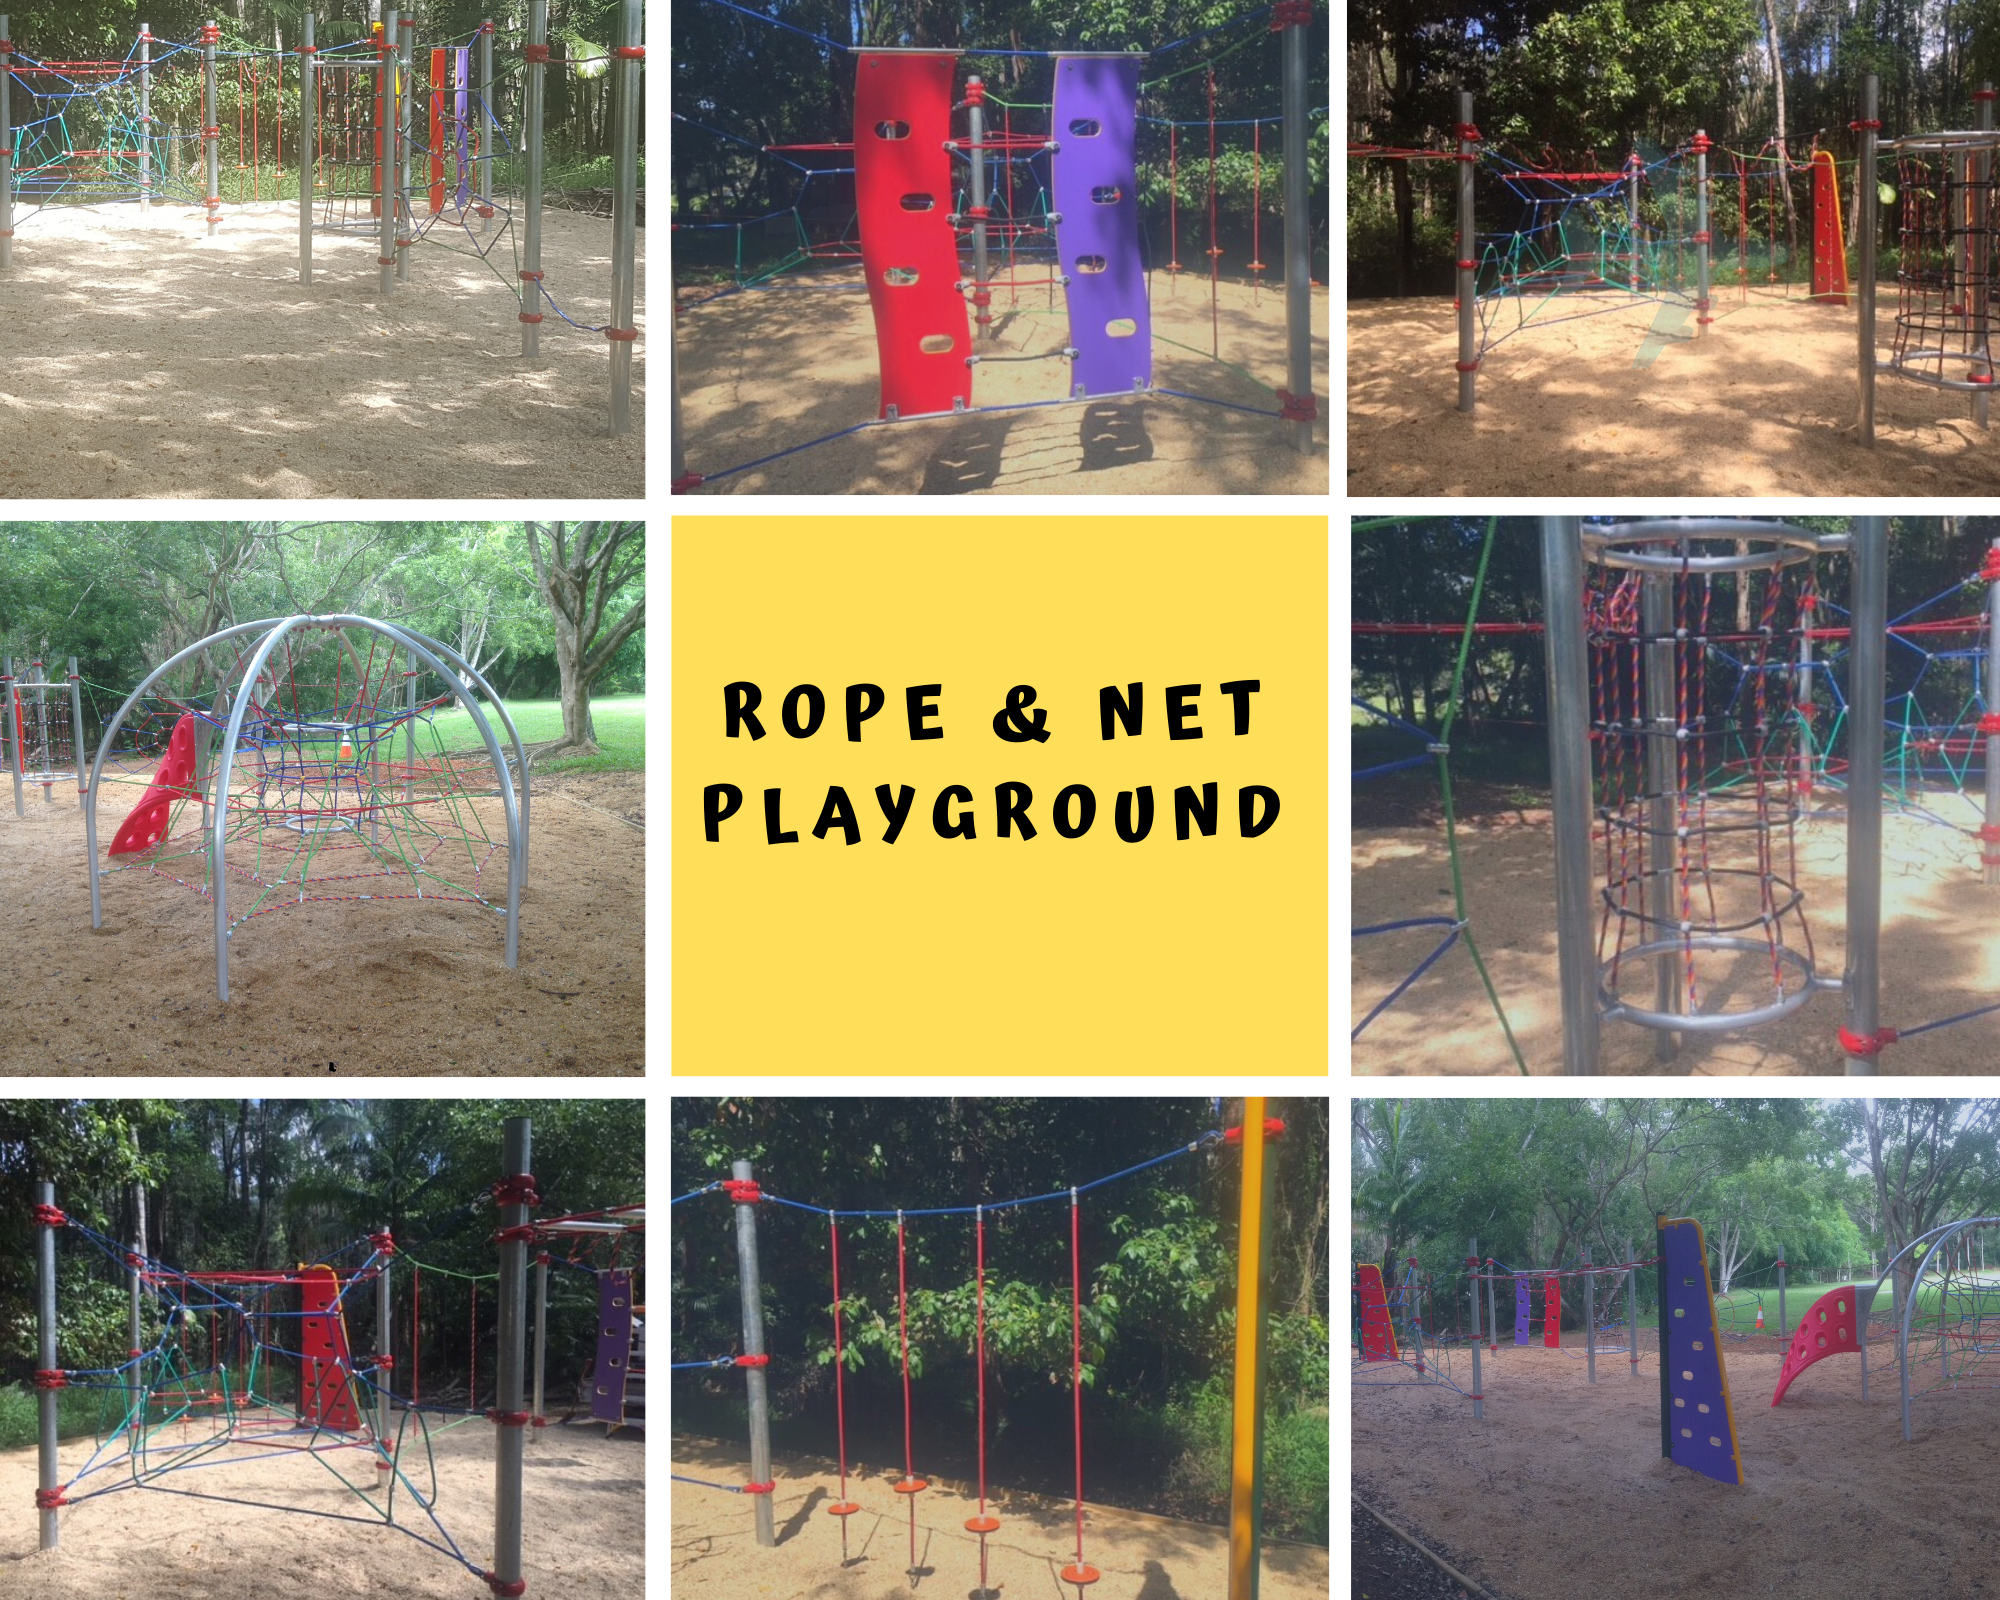 Rope & Net Playground